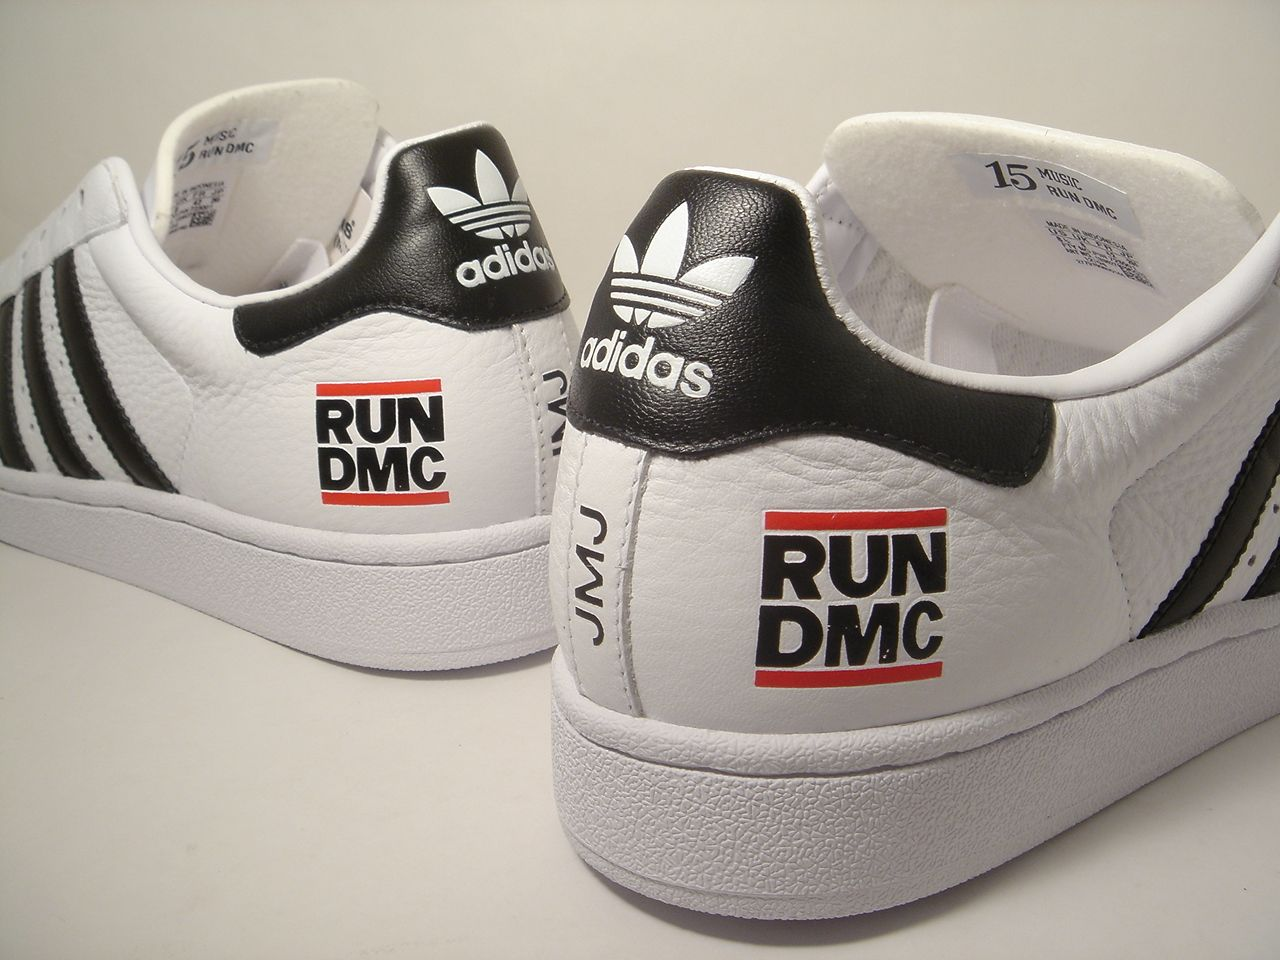 396b4888cf52a5 Adidas SuperStar 35th Anniversary – RUN DMC | Spatu | Adidas ...